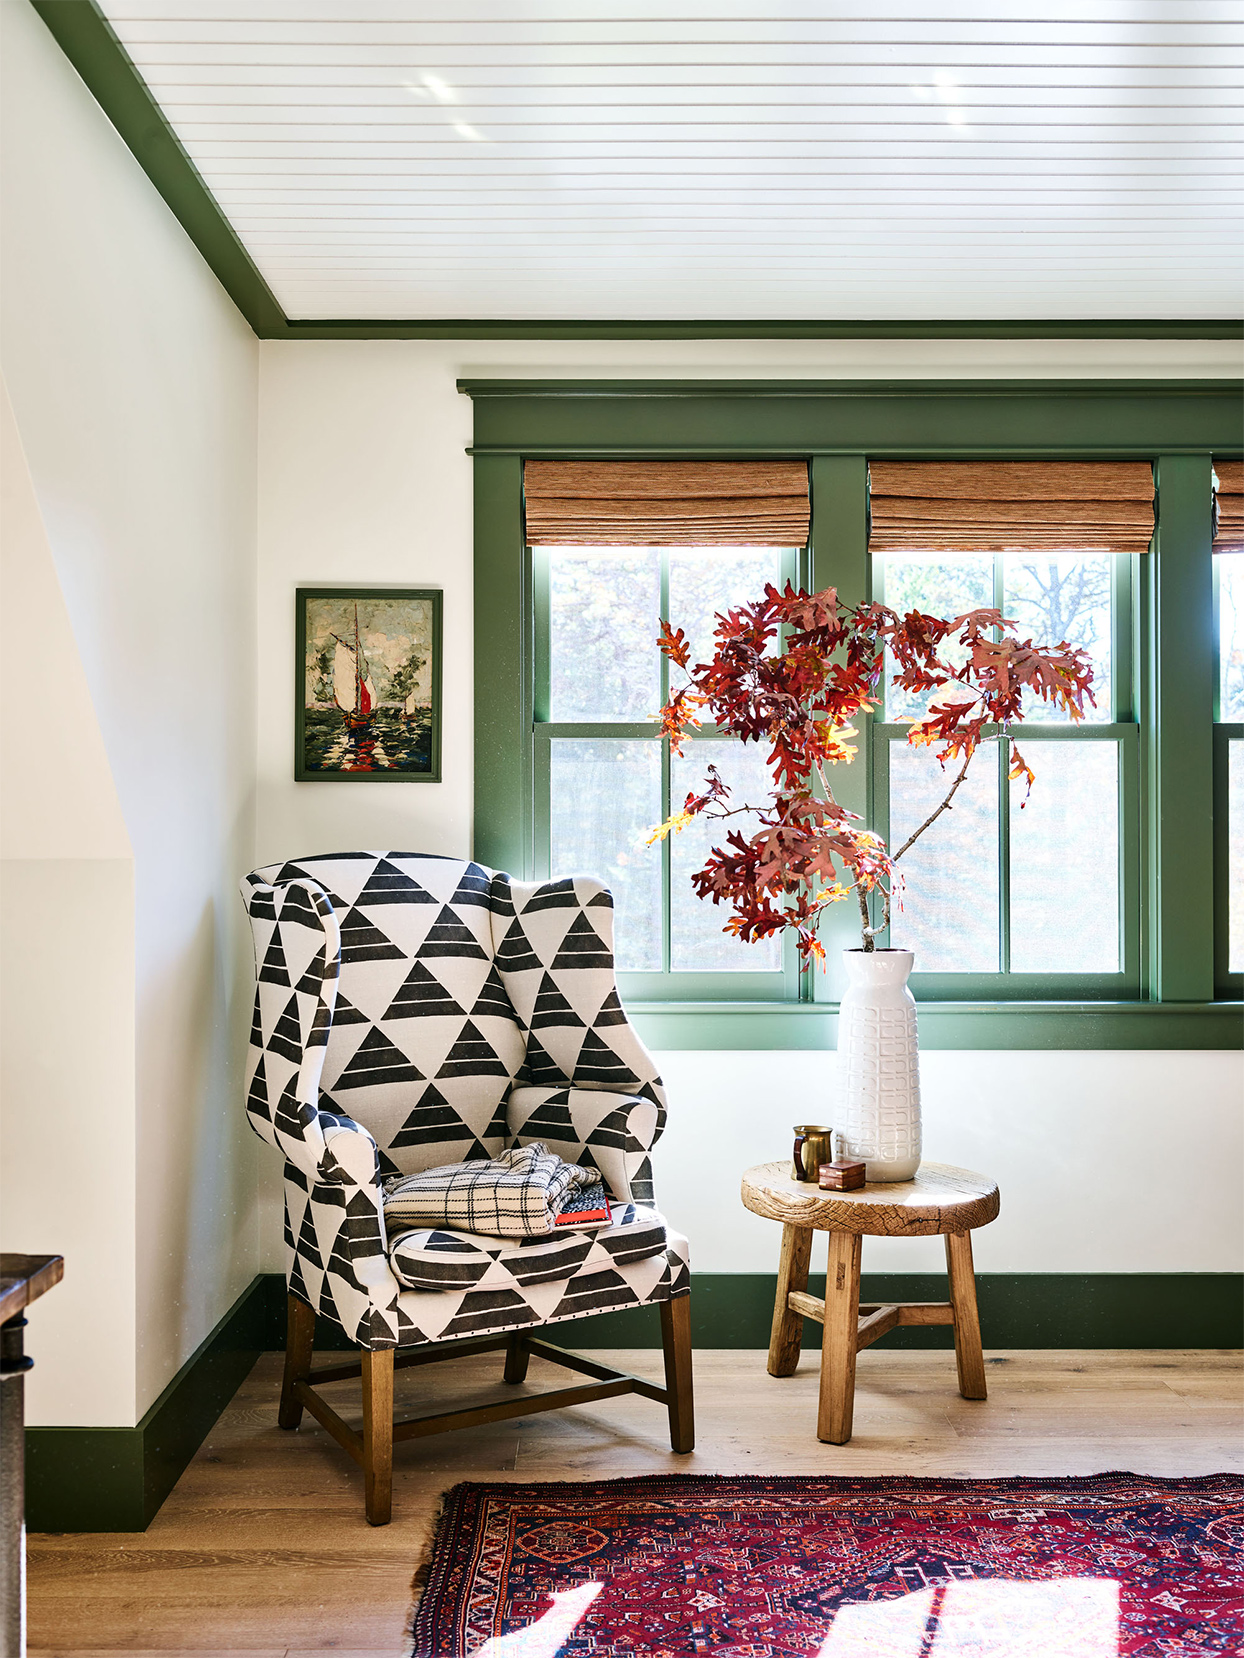 wing chair in front of green-trim window